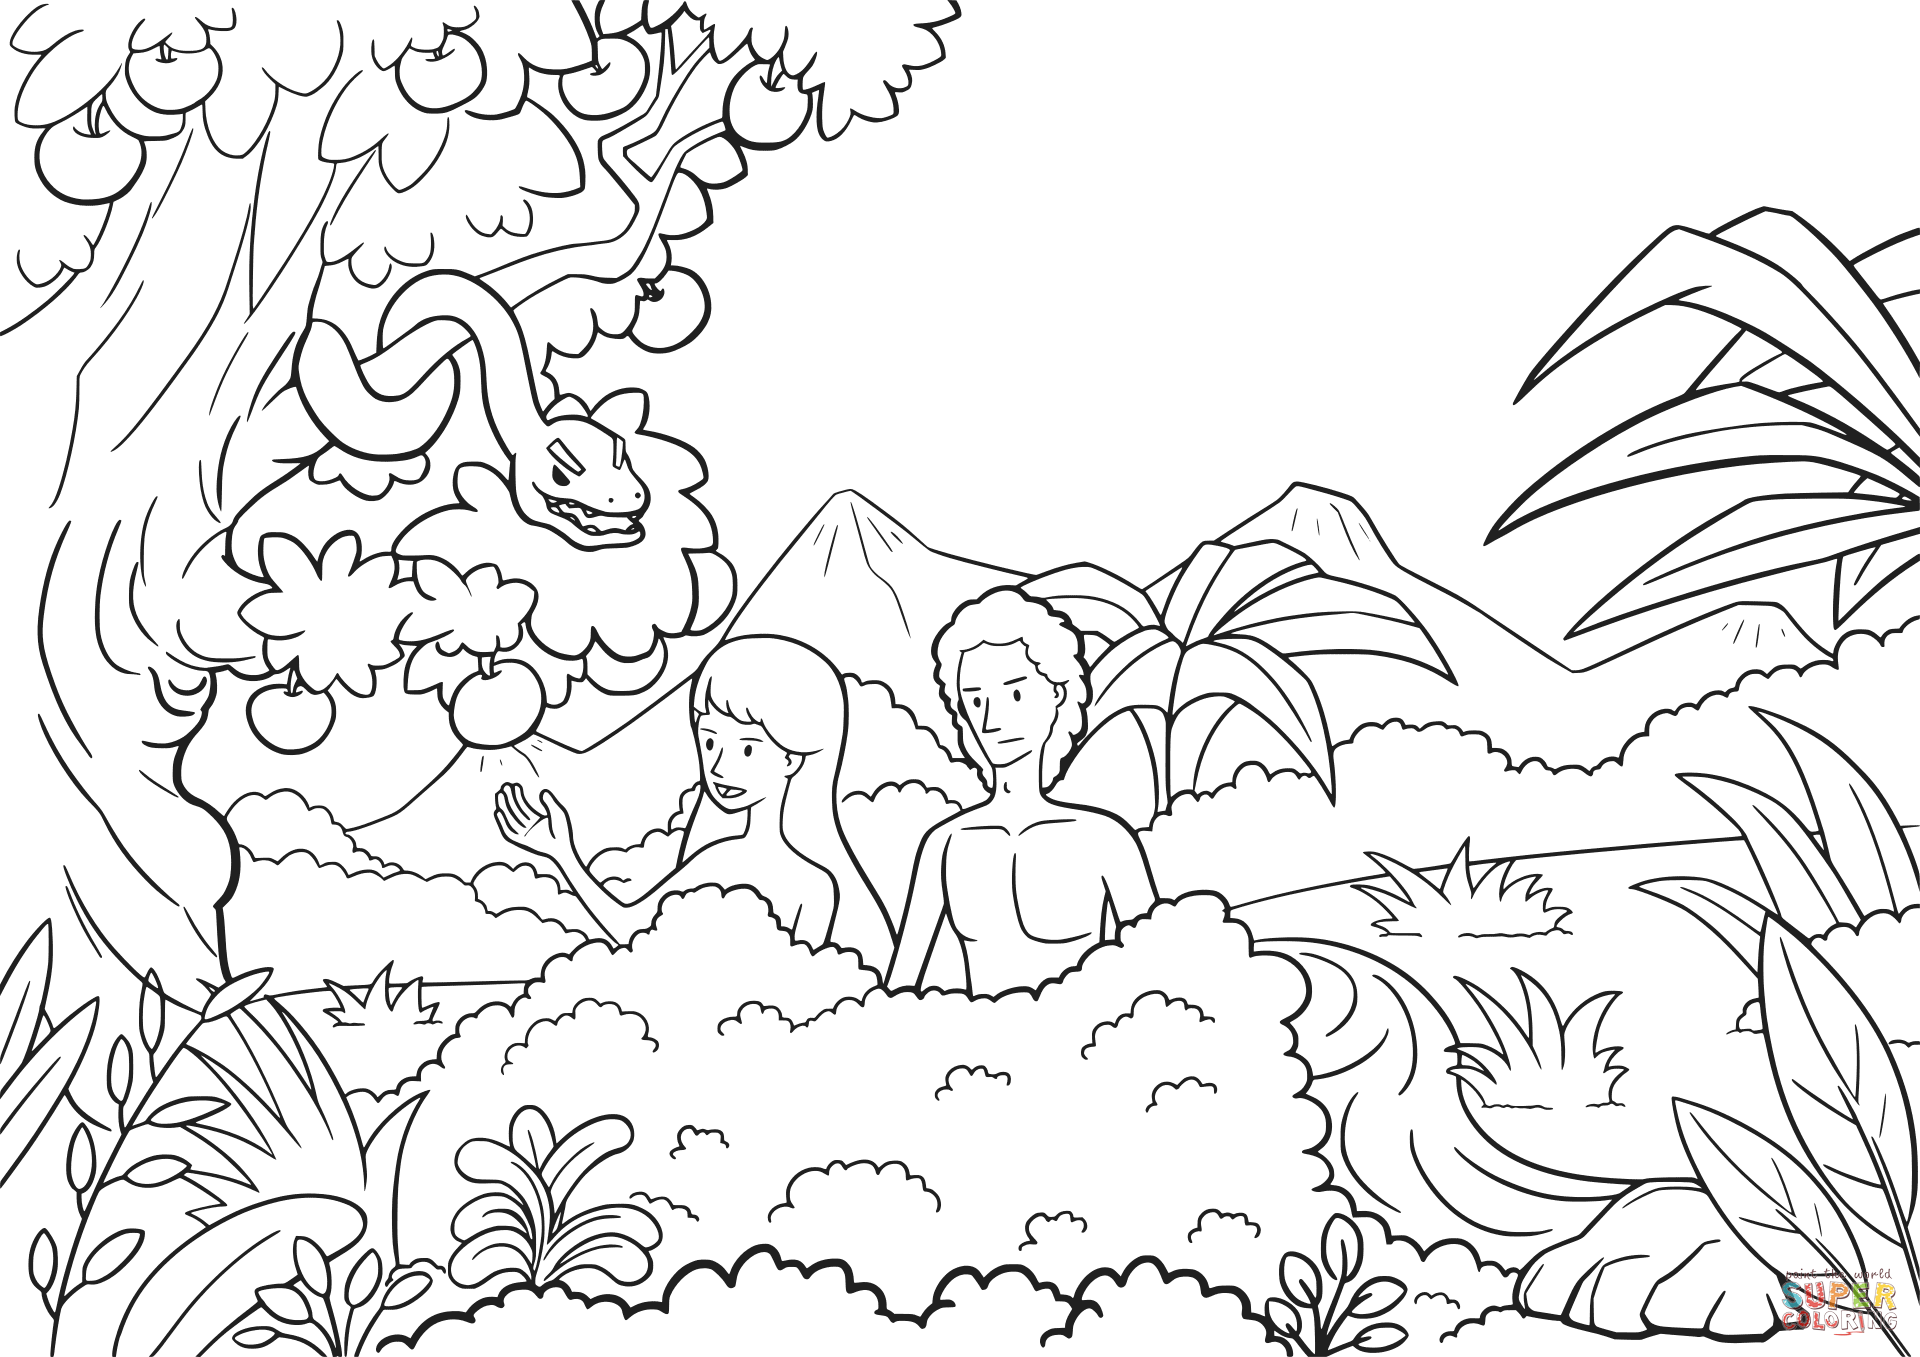 coloring page adam and eve adam and eve tempted by the serpent coloring page free adam page and eve coloring